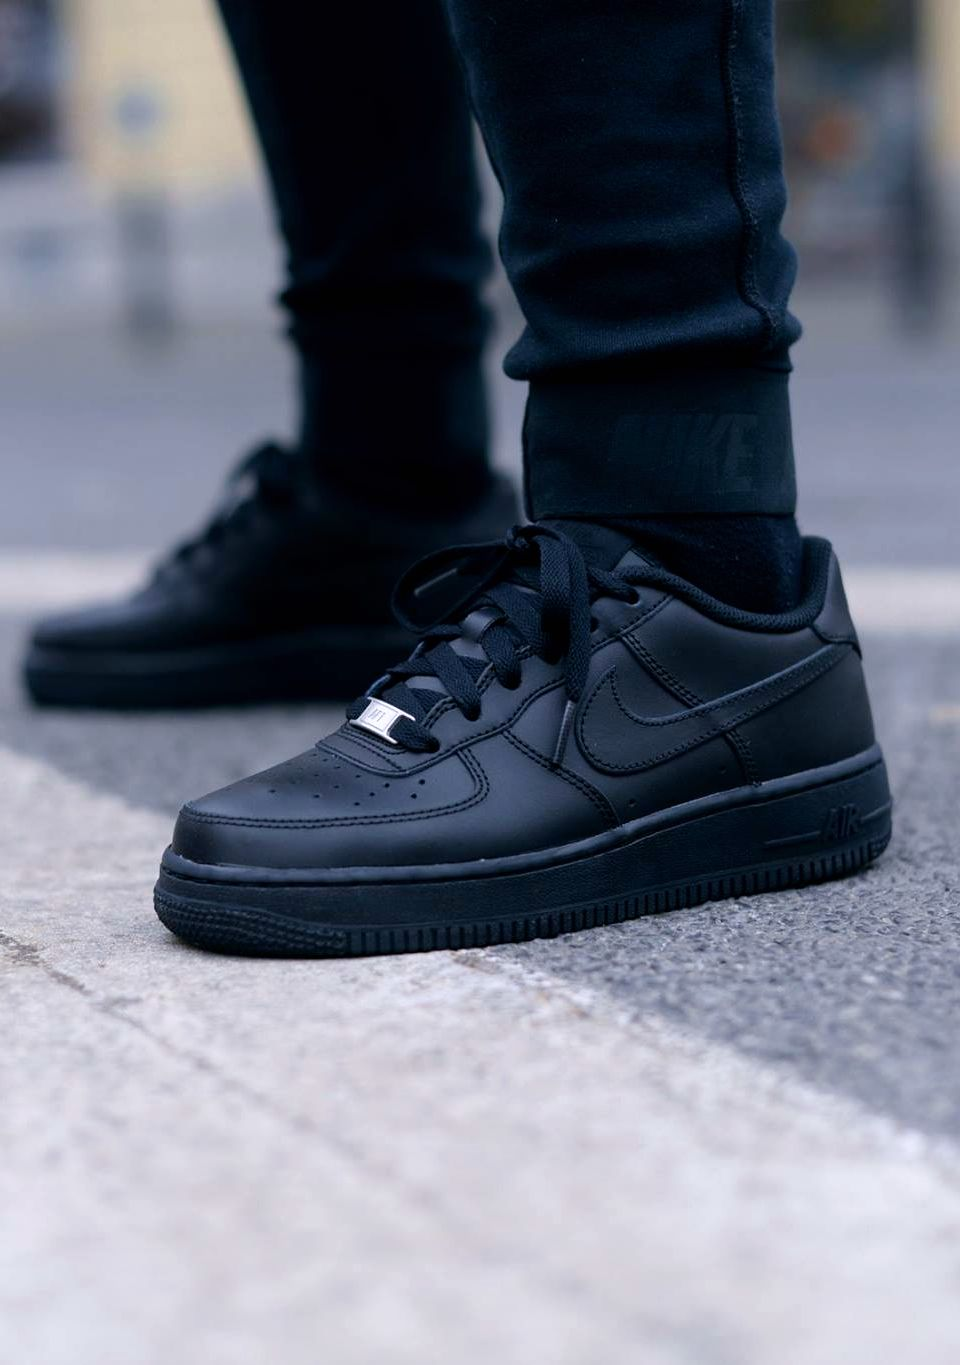 competitive price 6c2f1 2acc2 Nike Air Force 1  All Black  via CHMIELNA 20Buy it   CHMIELNA 20   Nike US    Finishline